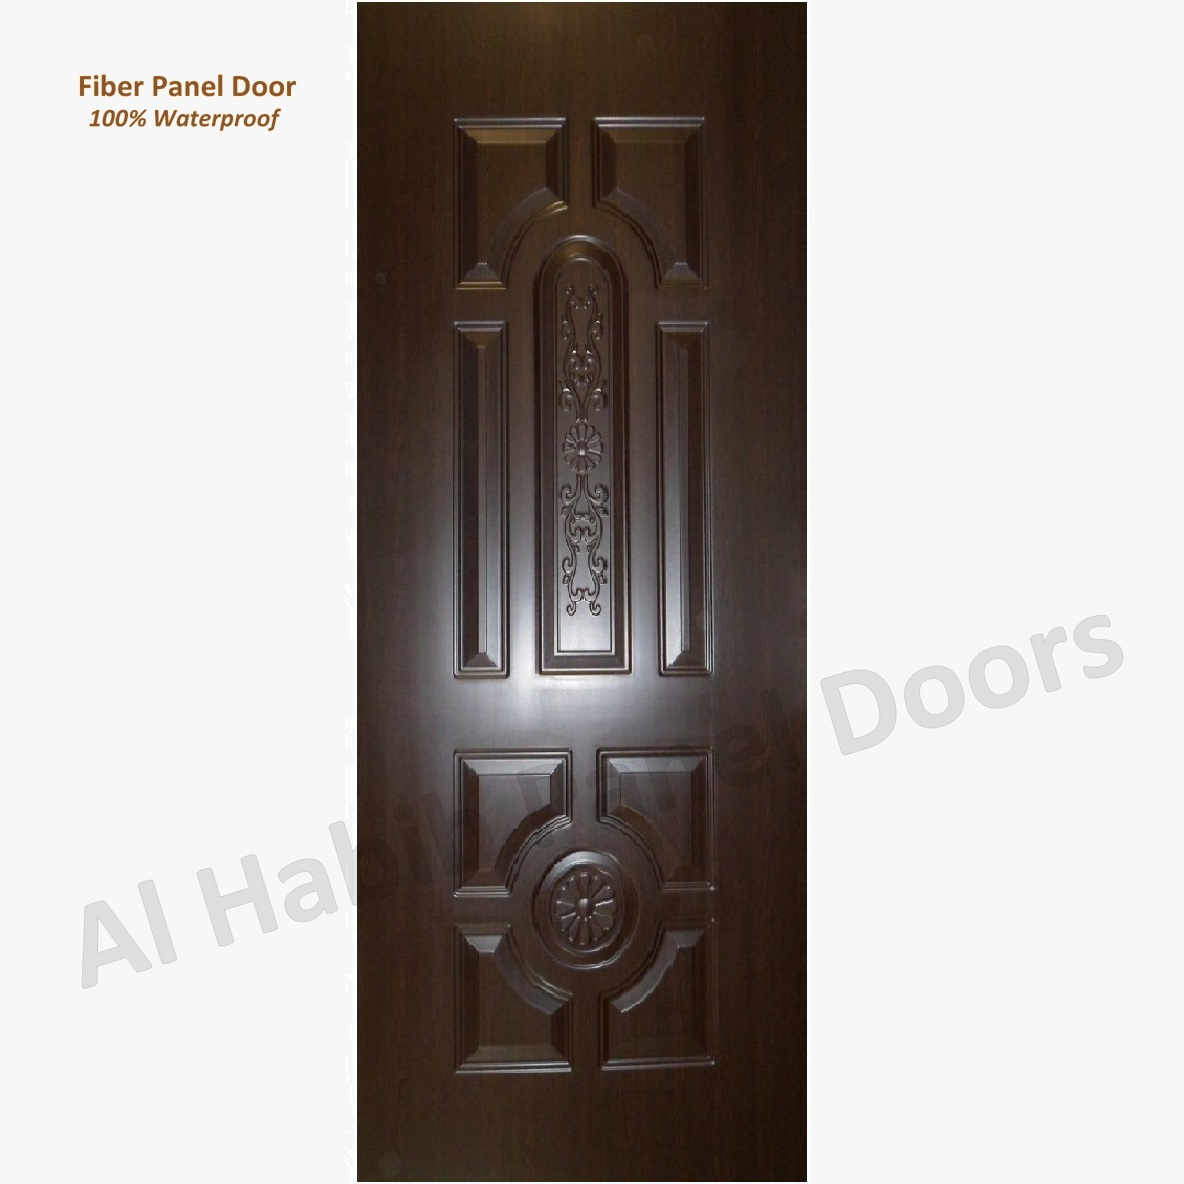 Fiber Panel Door Choco Brown